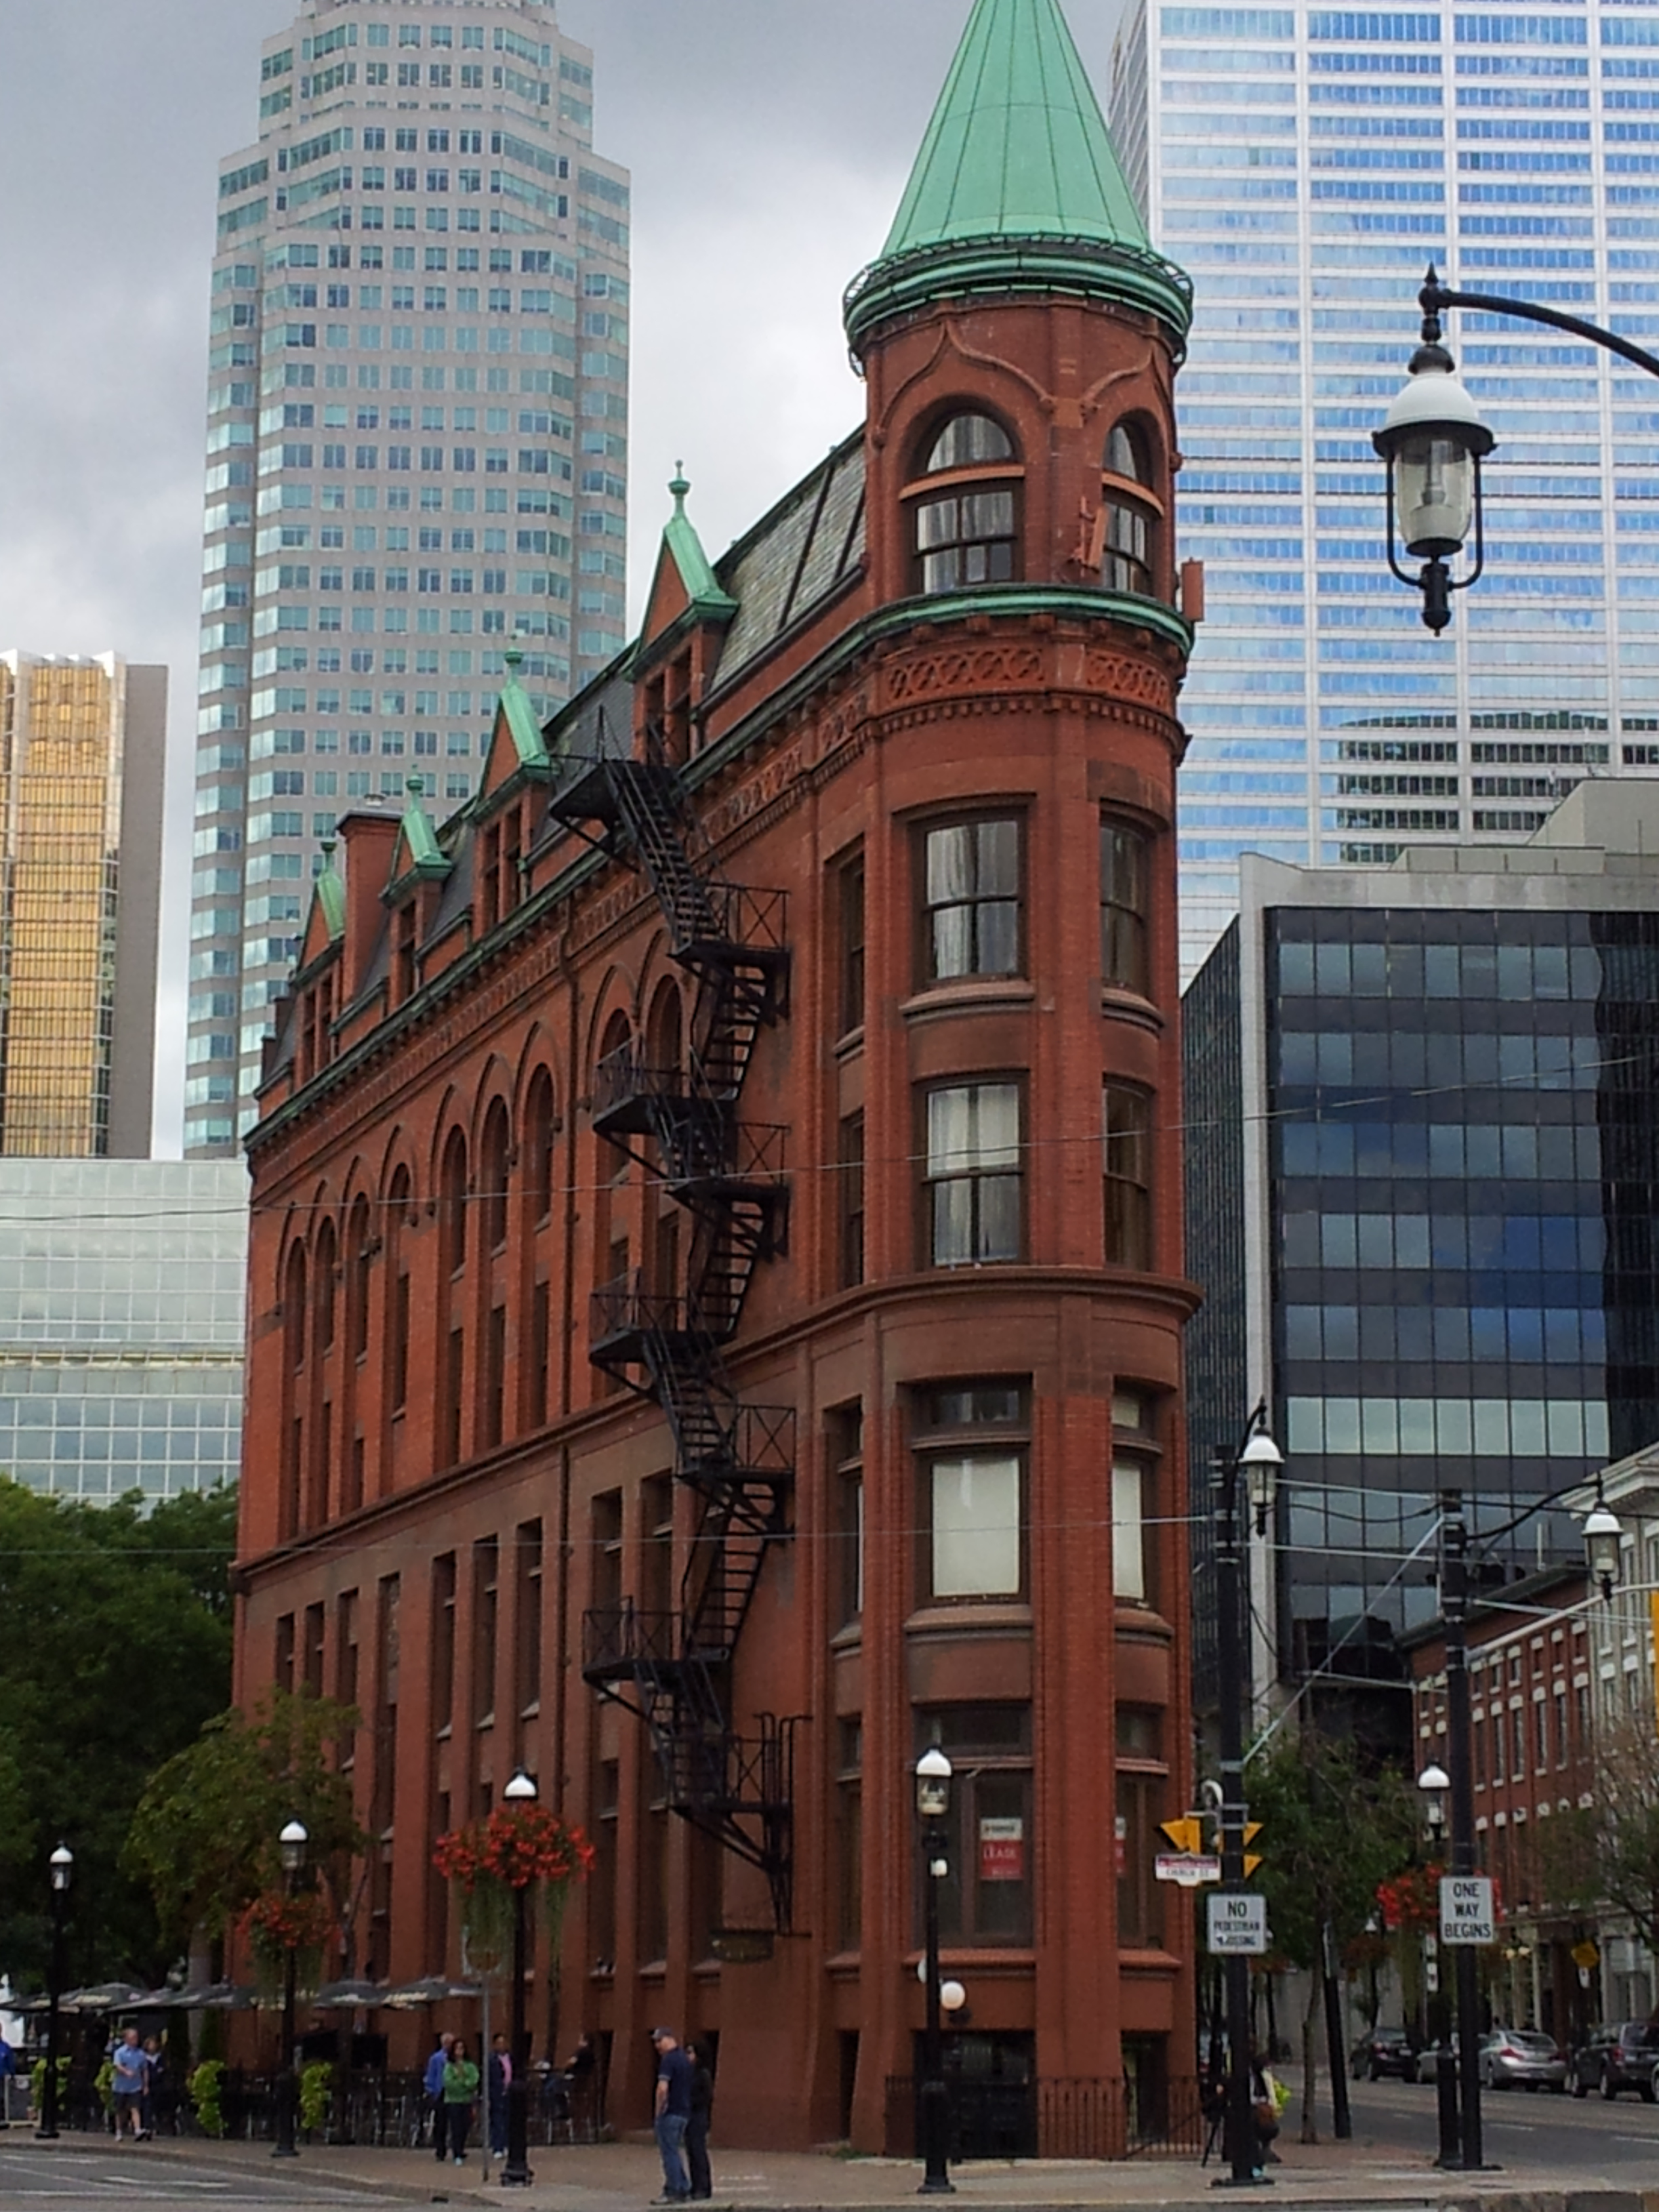 Discover Historic Old Town Toronto